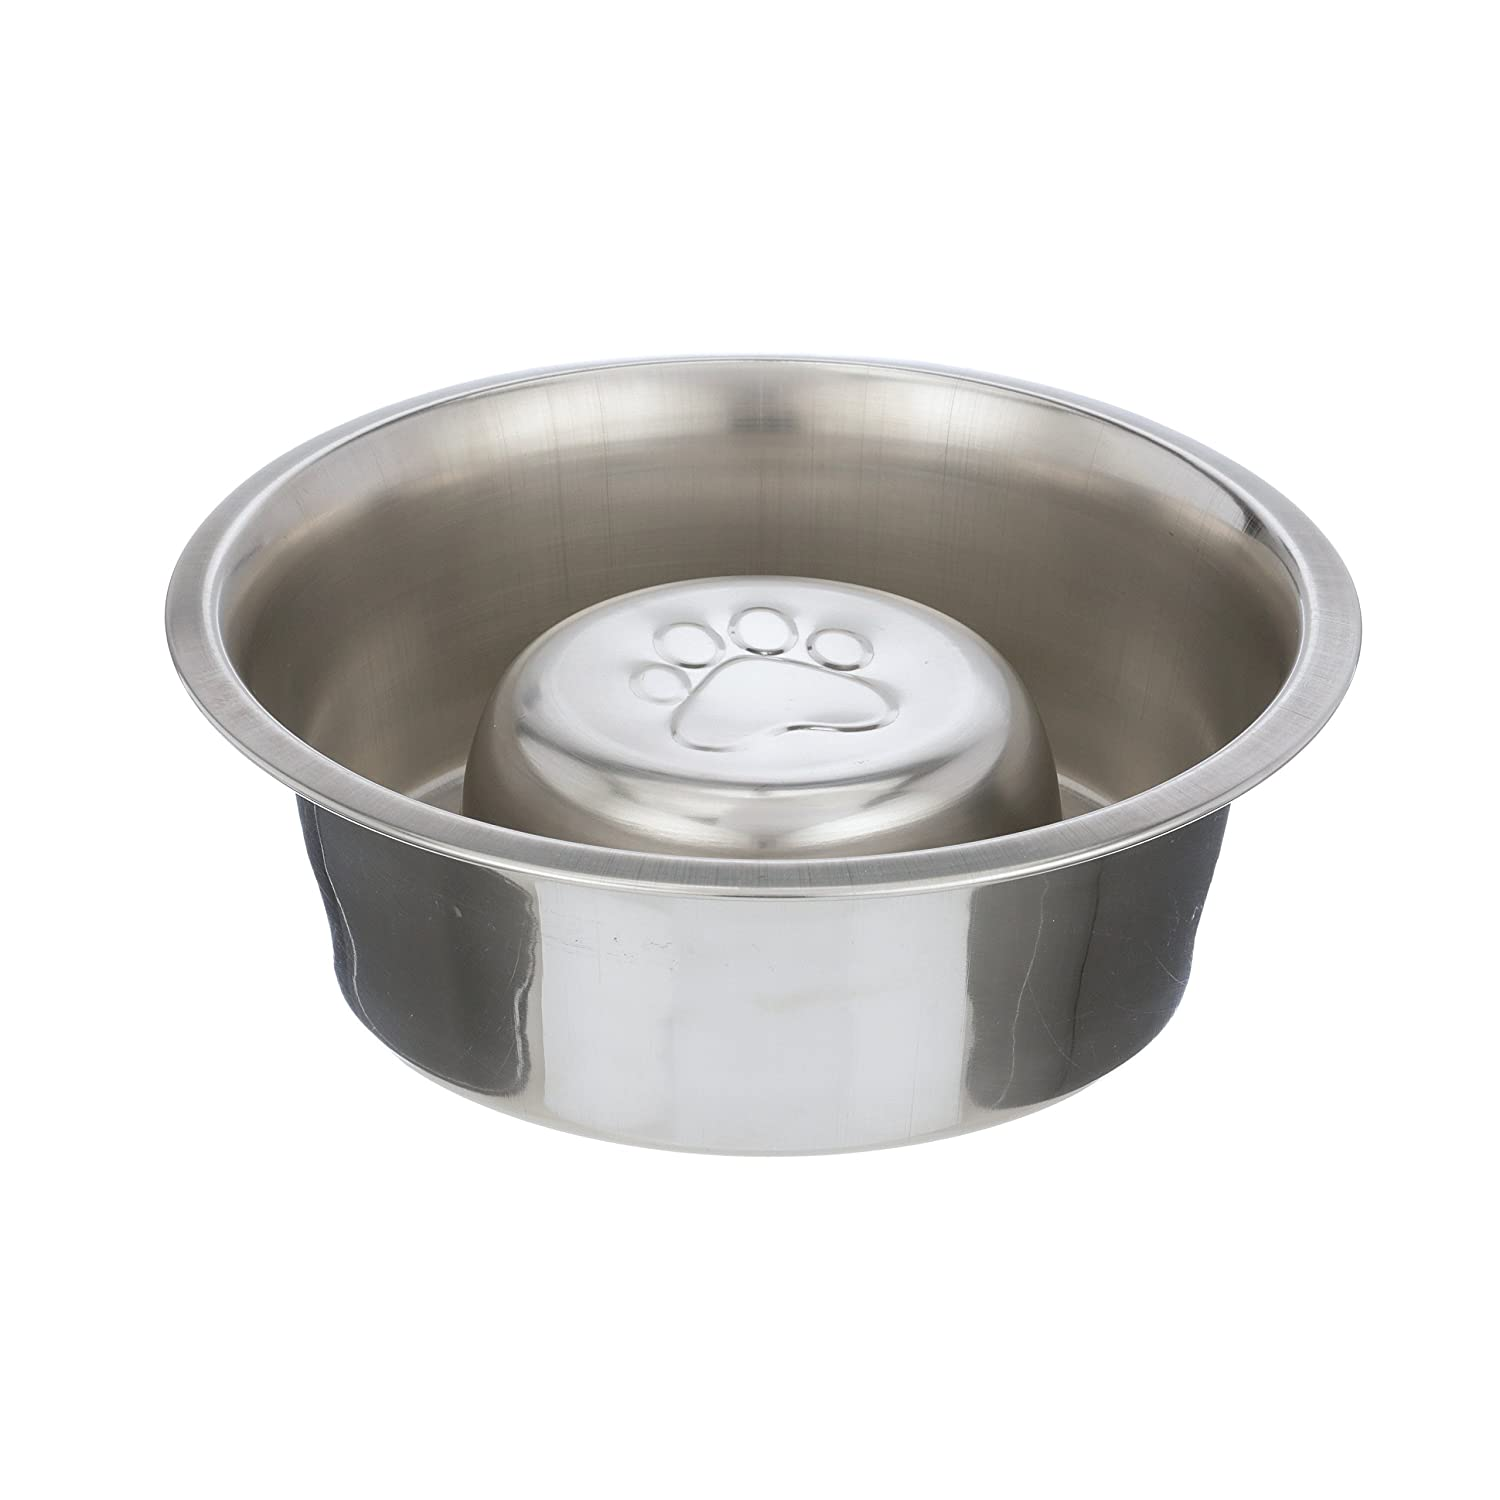 NEATER PET BRANDS Slow Feed Bowl Stainless Steel - Stop Dog Food Gulping, Bloat and Rapid Eating - Fits in Large Neater Feeders and Most Elevated Feeders